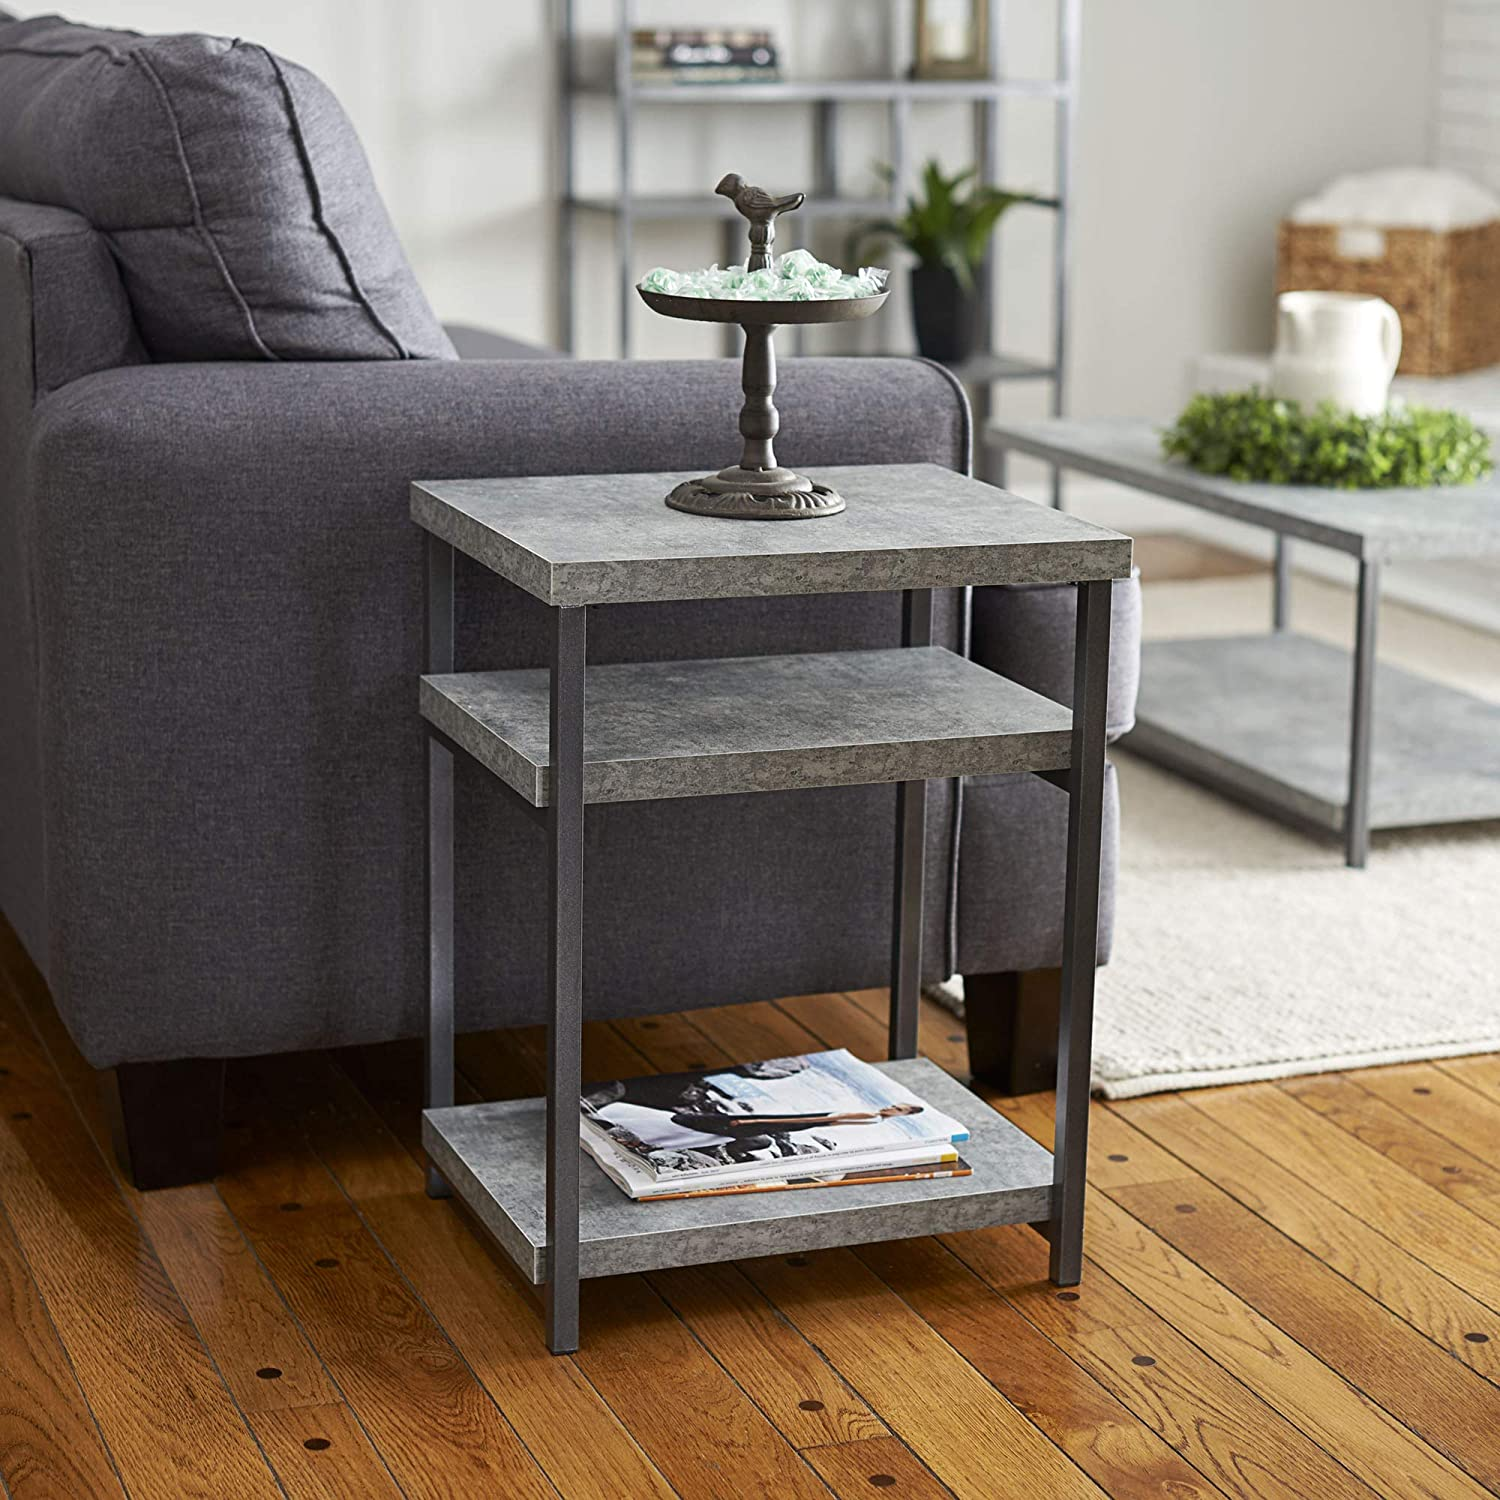 Household Essentials Side Table End Table With Shelf For Storage Faux Slate Concrete Furniture Decor